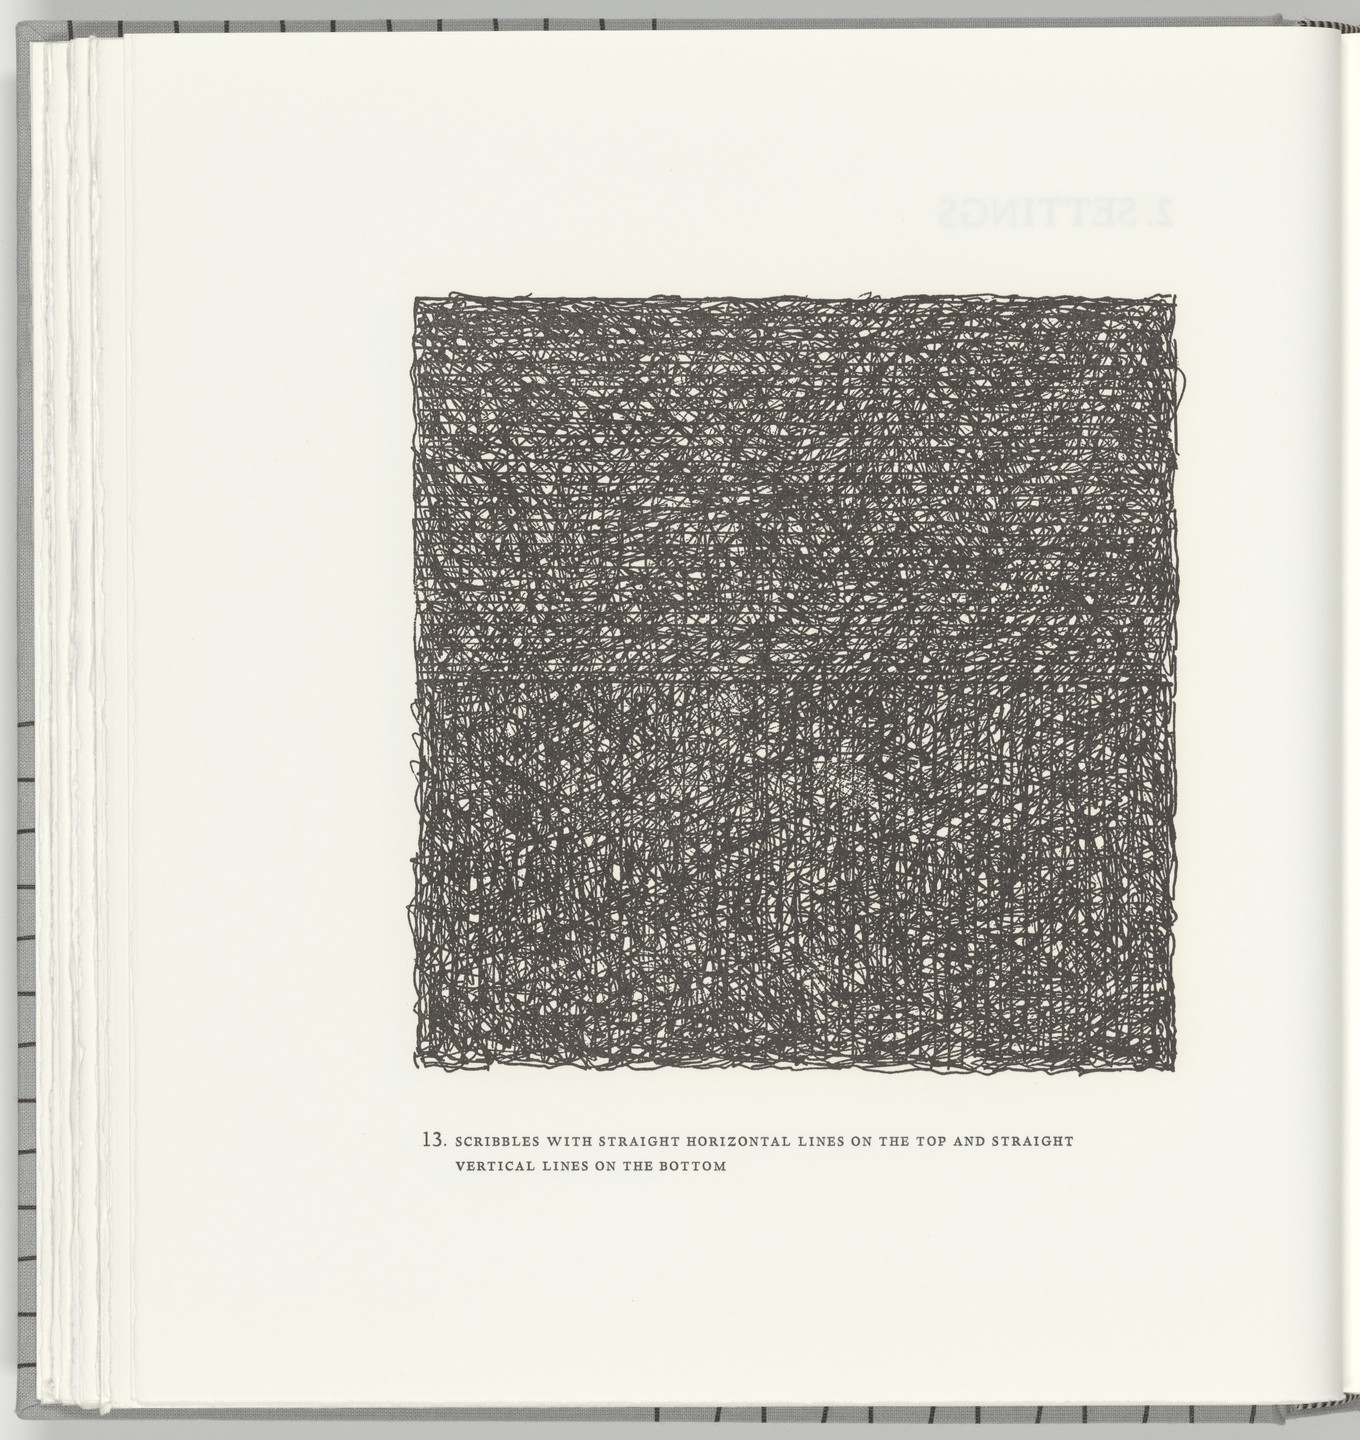 Sol LeWitt. Scribbles with Straight Horizontal Lines on the Top and Straight Vertical Lines on the Bottom (plate 13) from Squarings. 2003